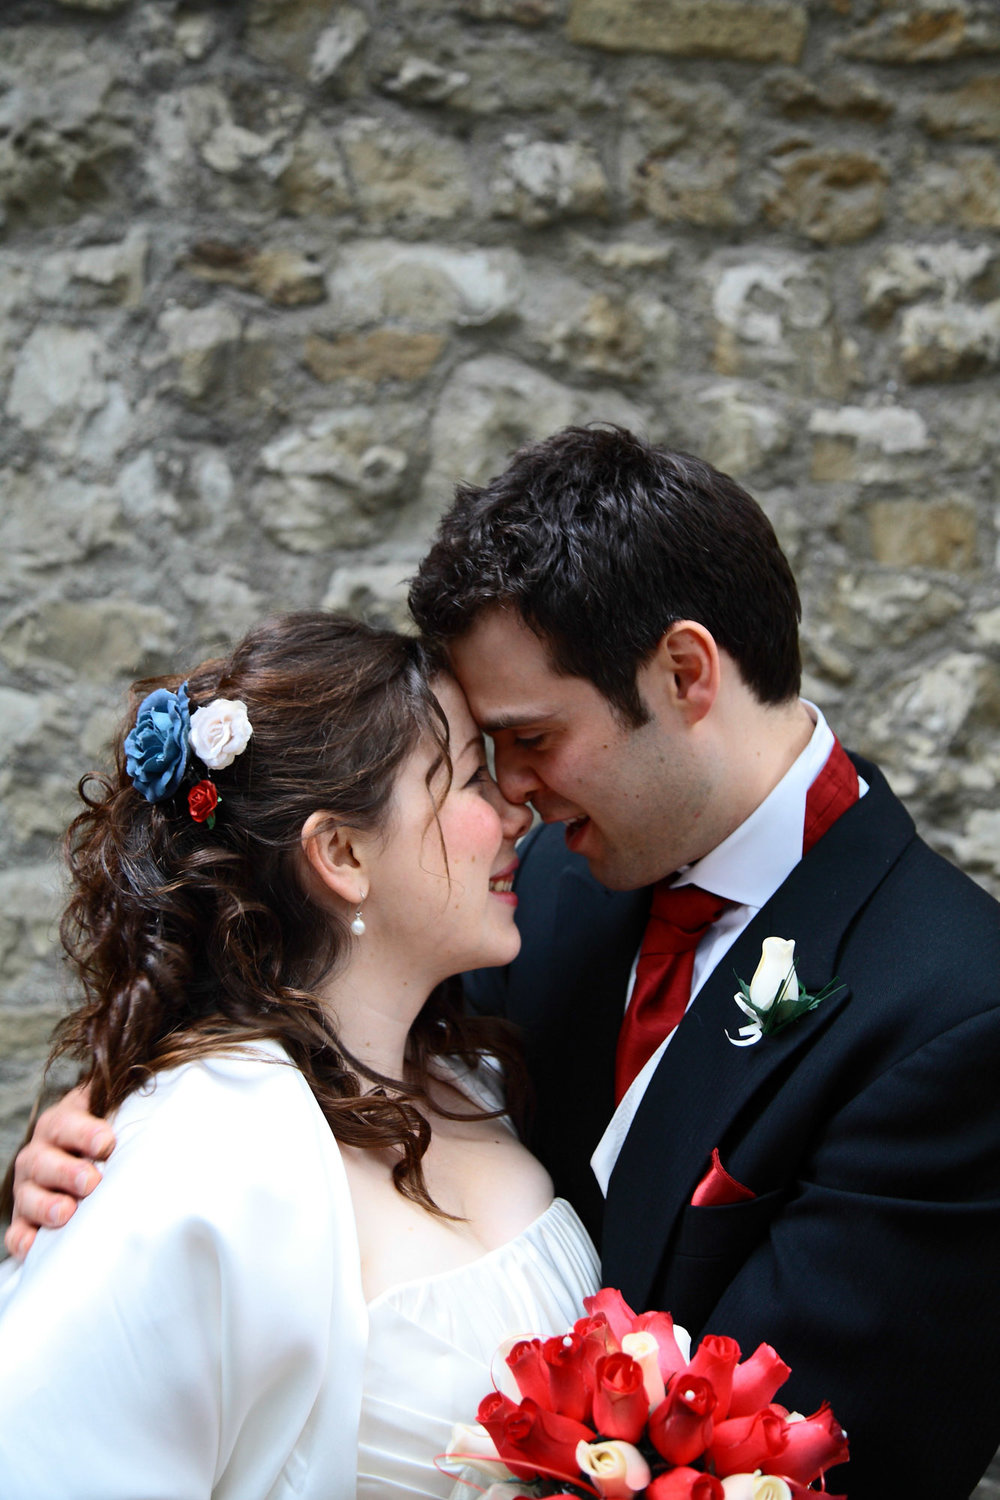 weddings-couples-love-photographer-oxford-london-jonathan-self-photography-82.jpg